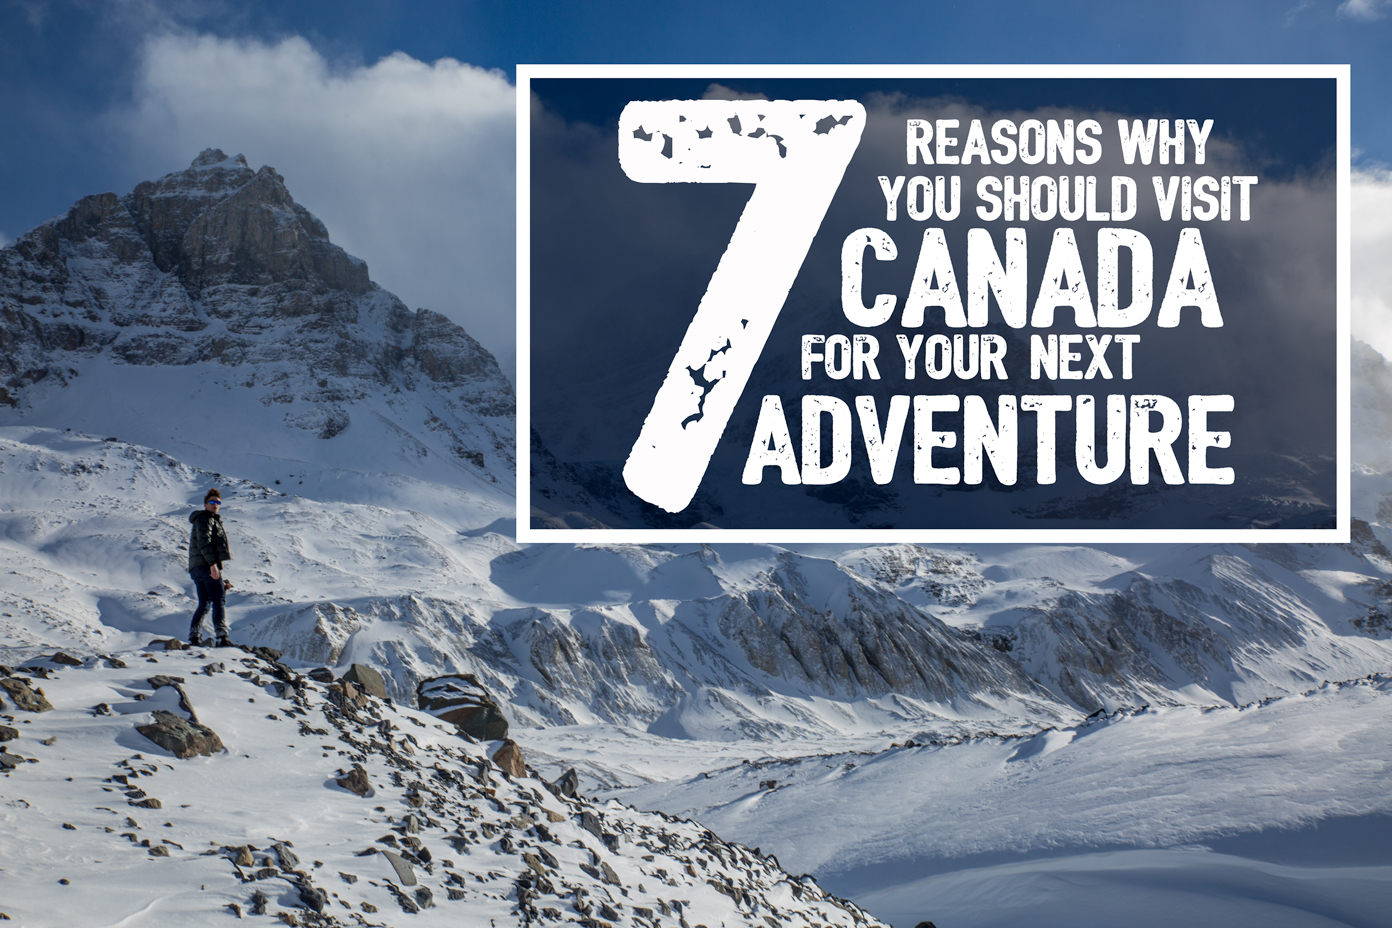 7 reasons why should visit canada for next adventure